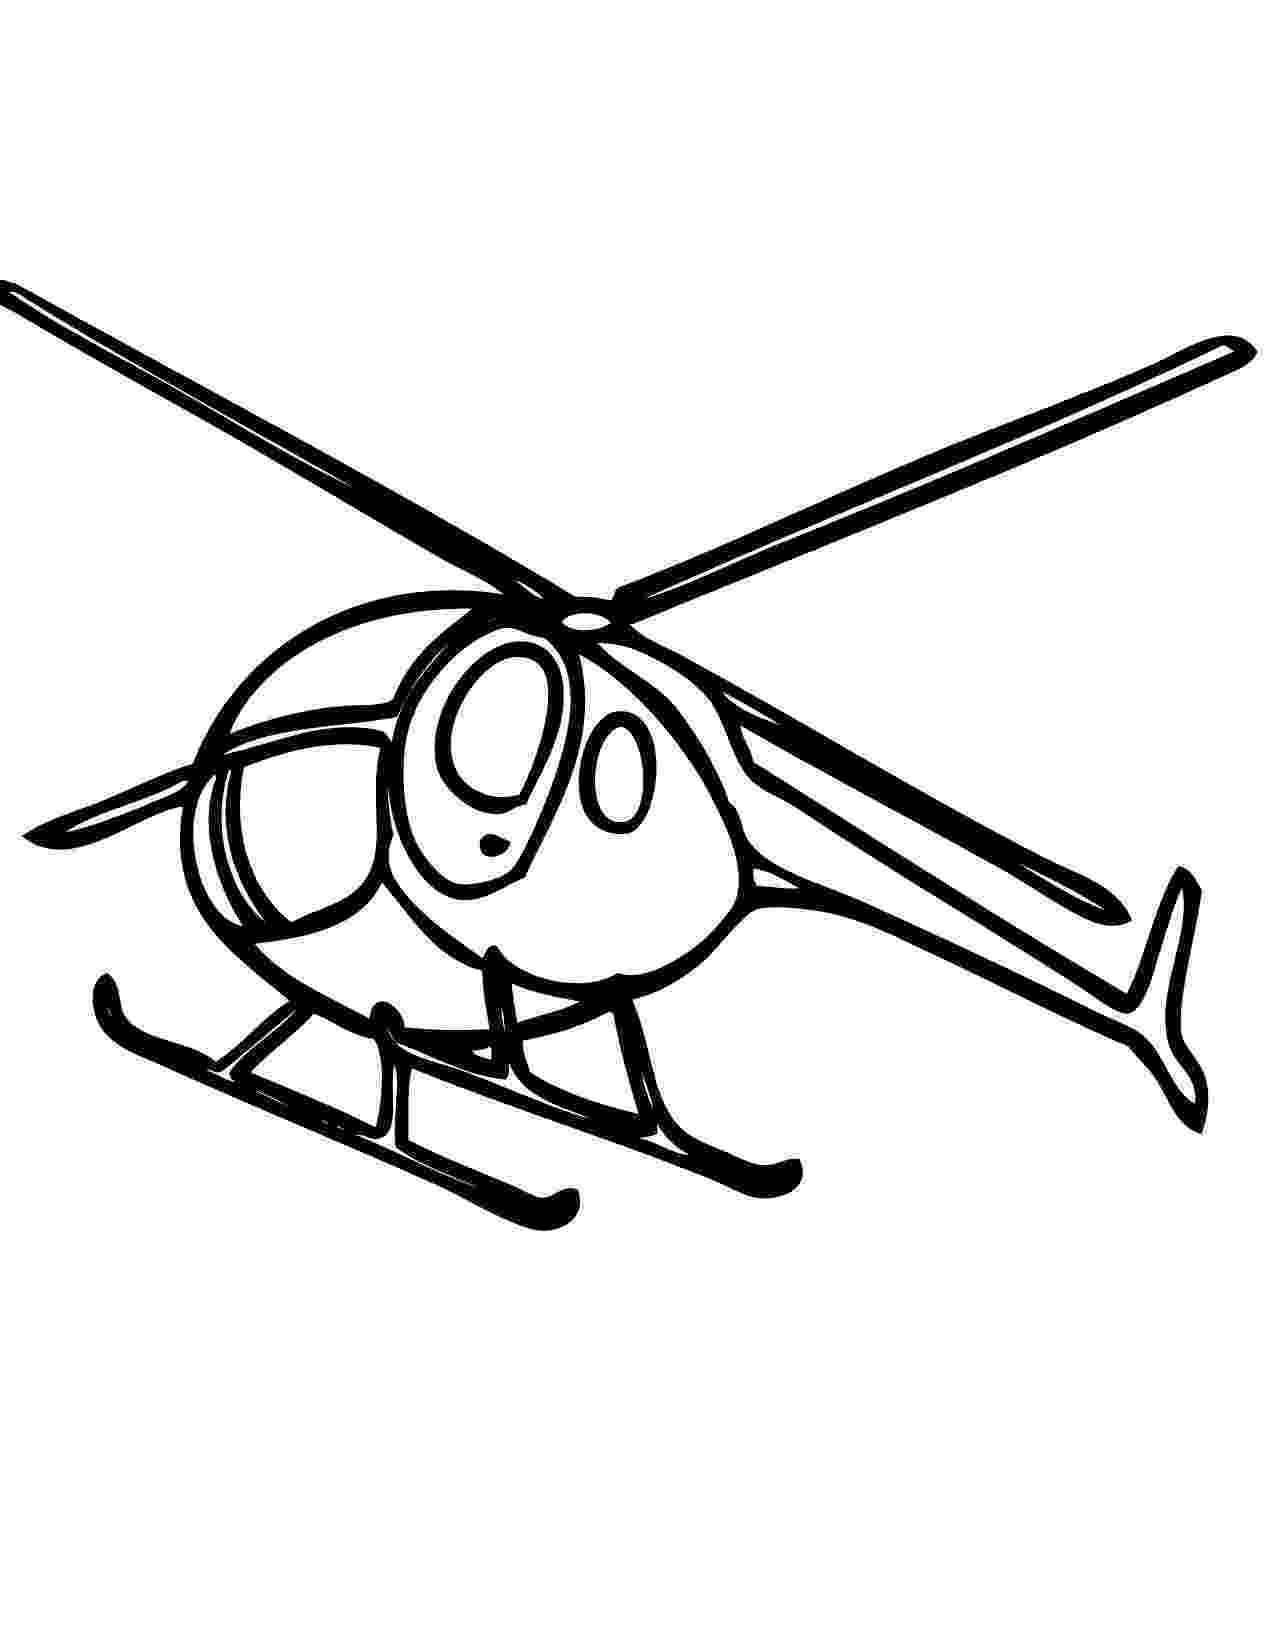 helicopter coloring page helicopter coloring pages to download and print for free page helicopter coloring